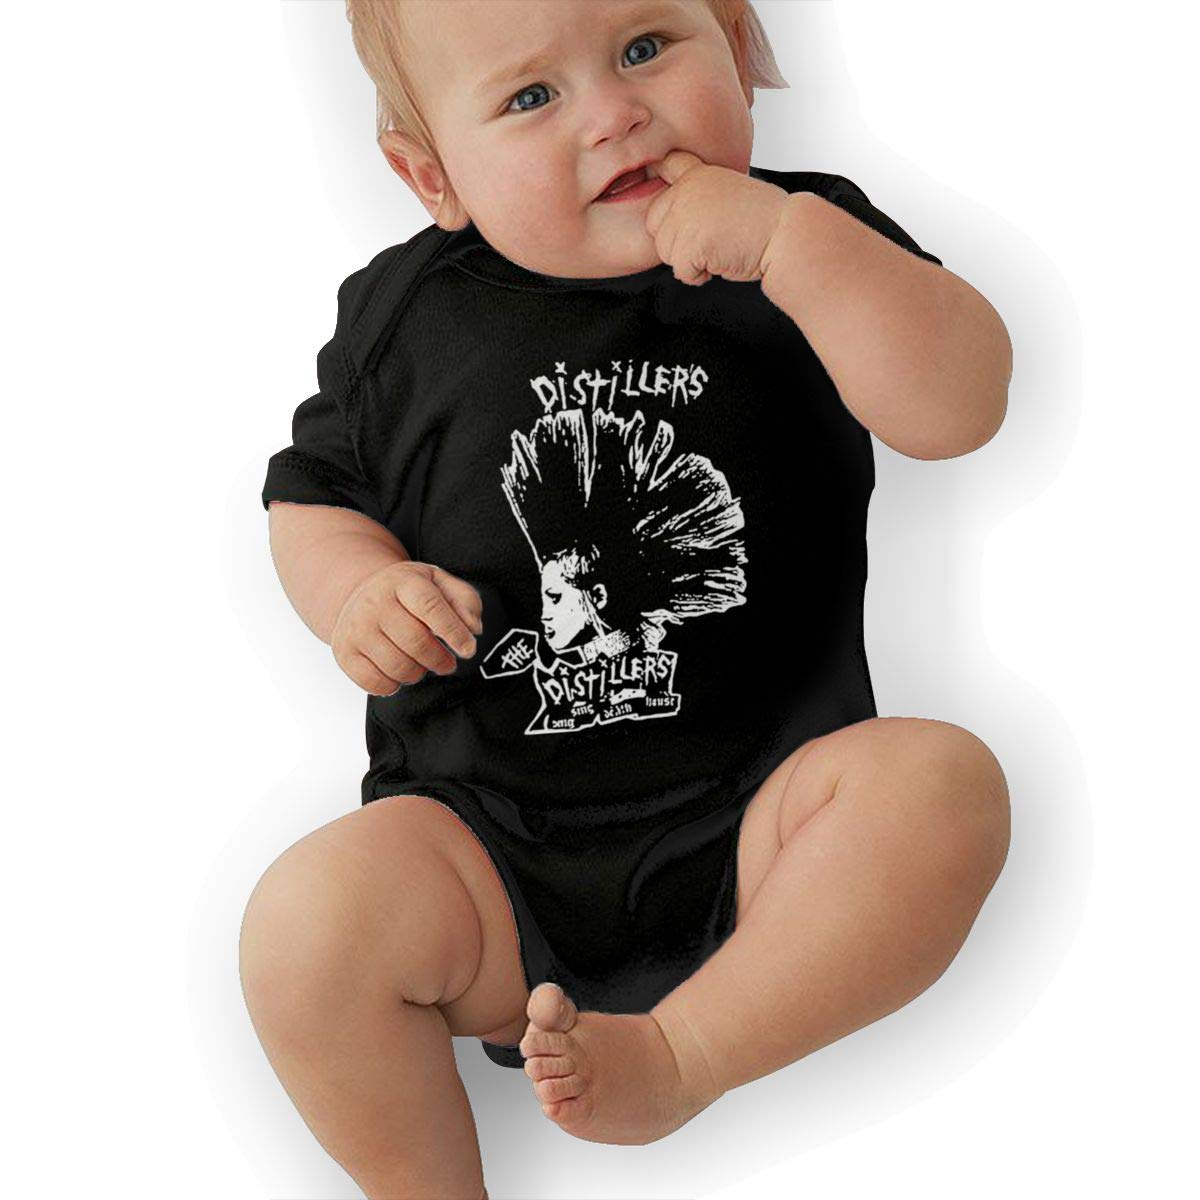 Kids Baby Short Sleeve Romper The-Distillers Unisex Cotton Cute Jumpsuit Baby Crawler Clothes